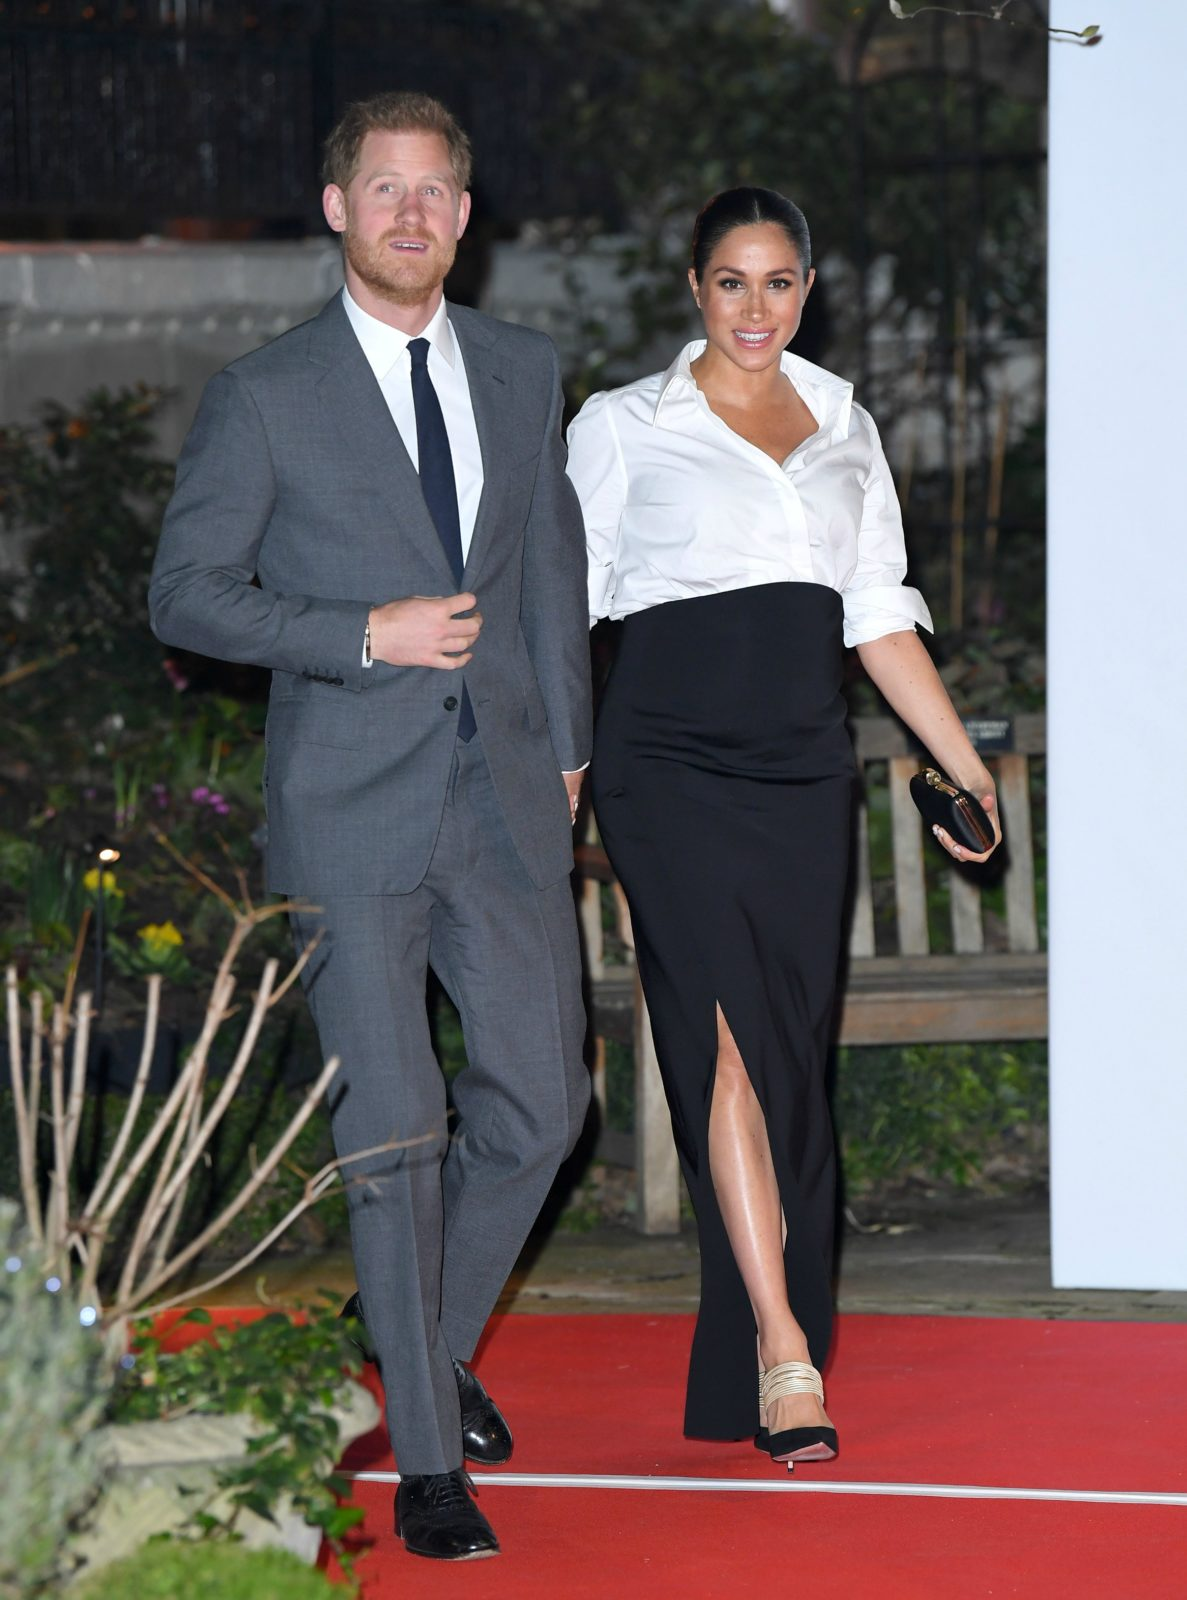 Meghan and Harry looked dressed to impress. Source: Getty.